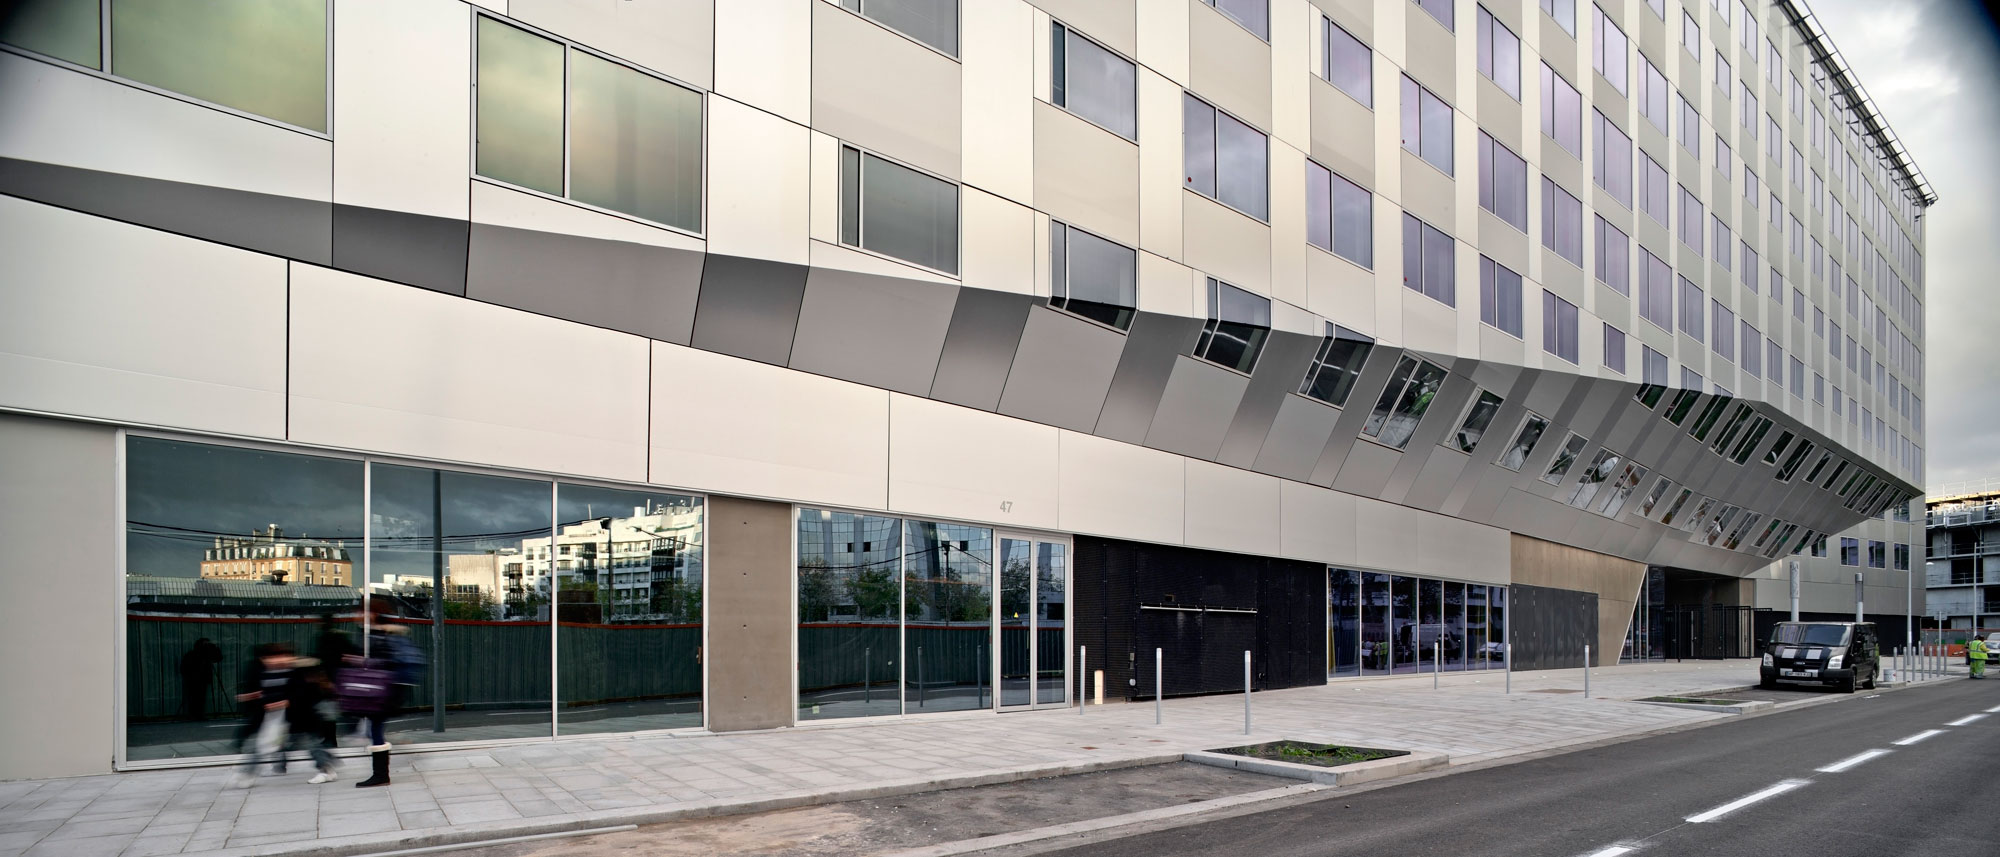 La factory office building in boulogne billancourt france - Office de tourisme boulogne billancourt ...